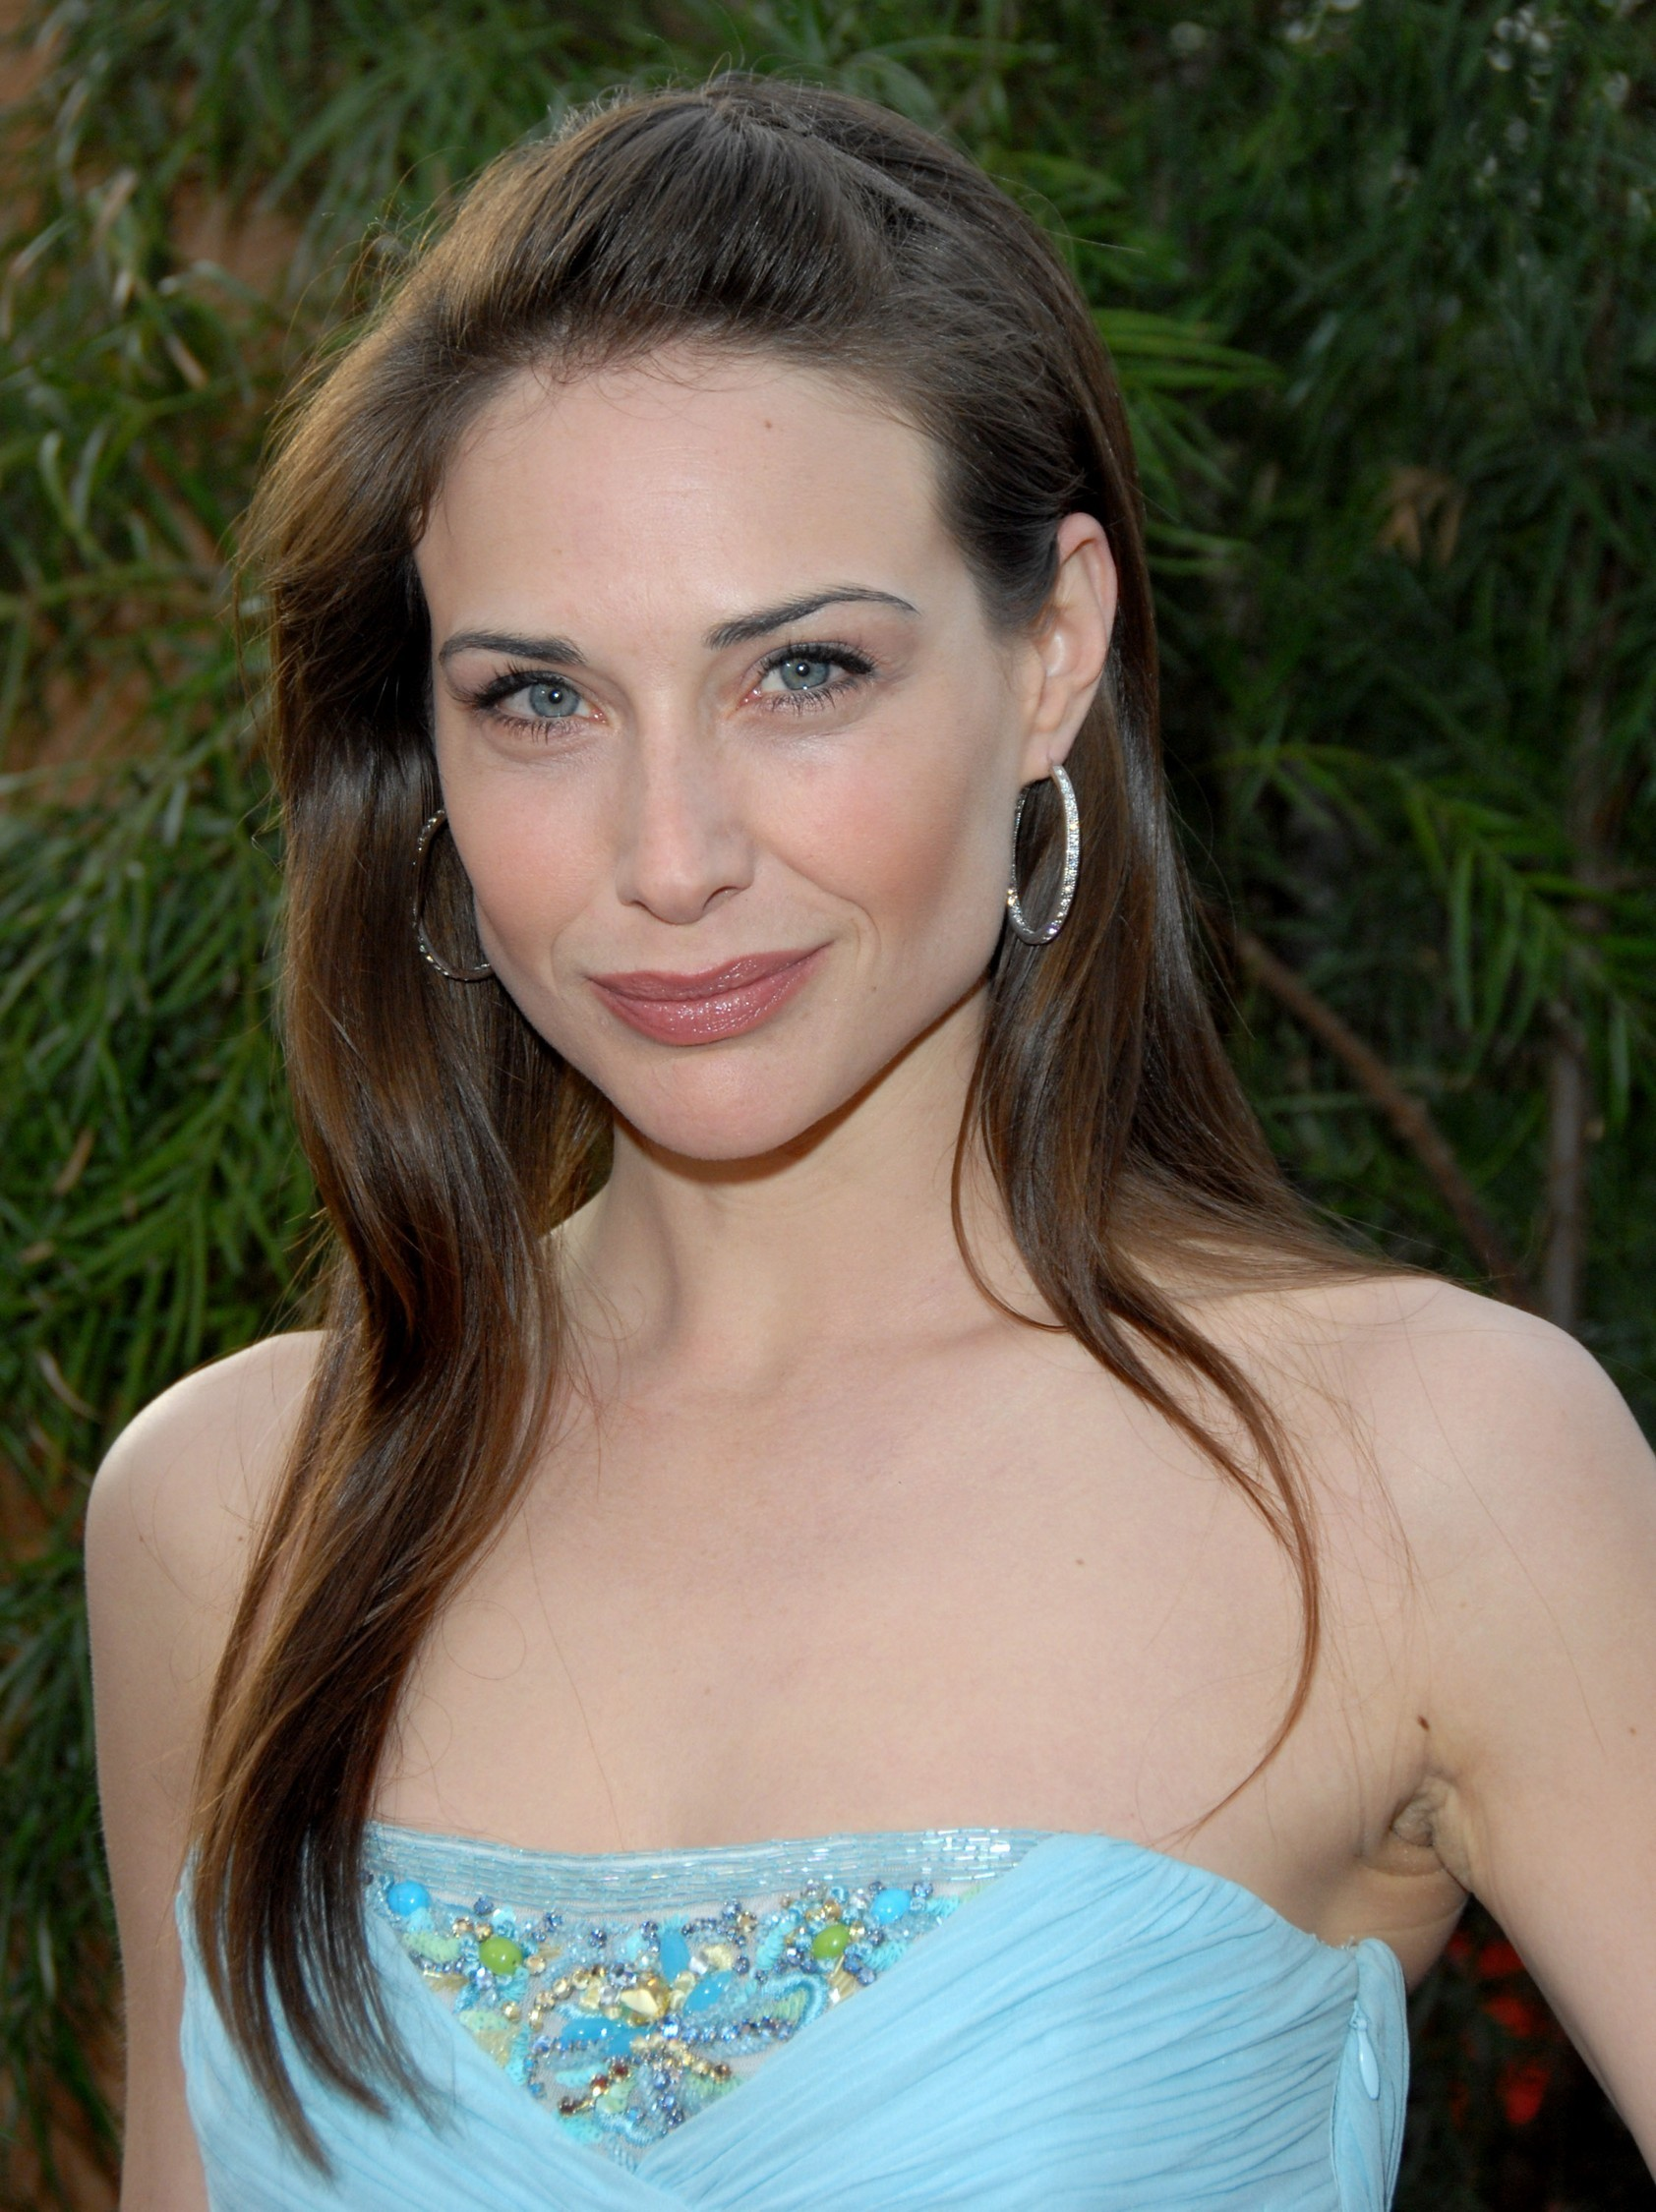 Fotos Claire Forlani nudes (34 foto and video), Sexy, Bikini, Boobs, underwear 2020